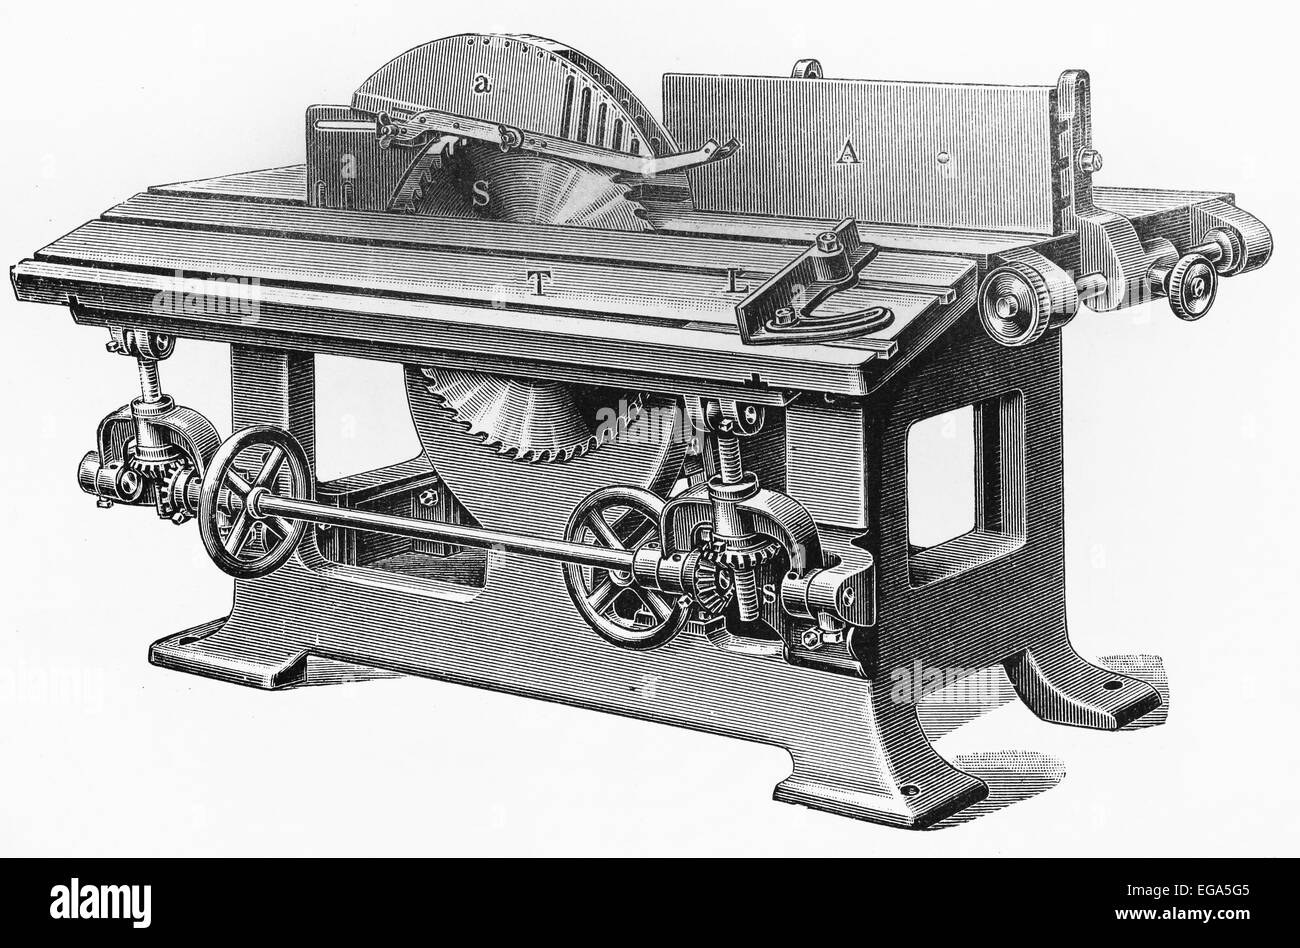 Circular saw for wood processing, from the beginning of 20th century - Stock Image